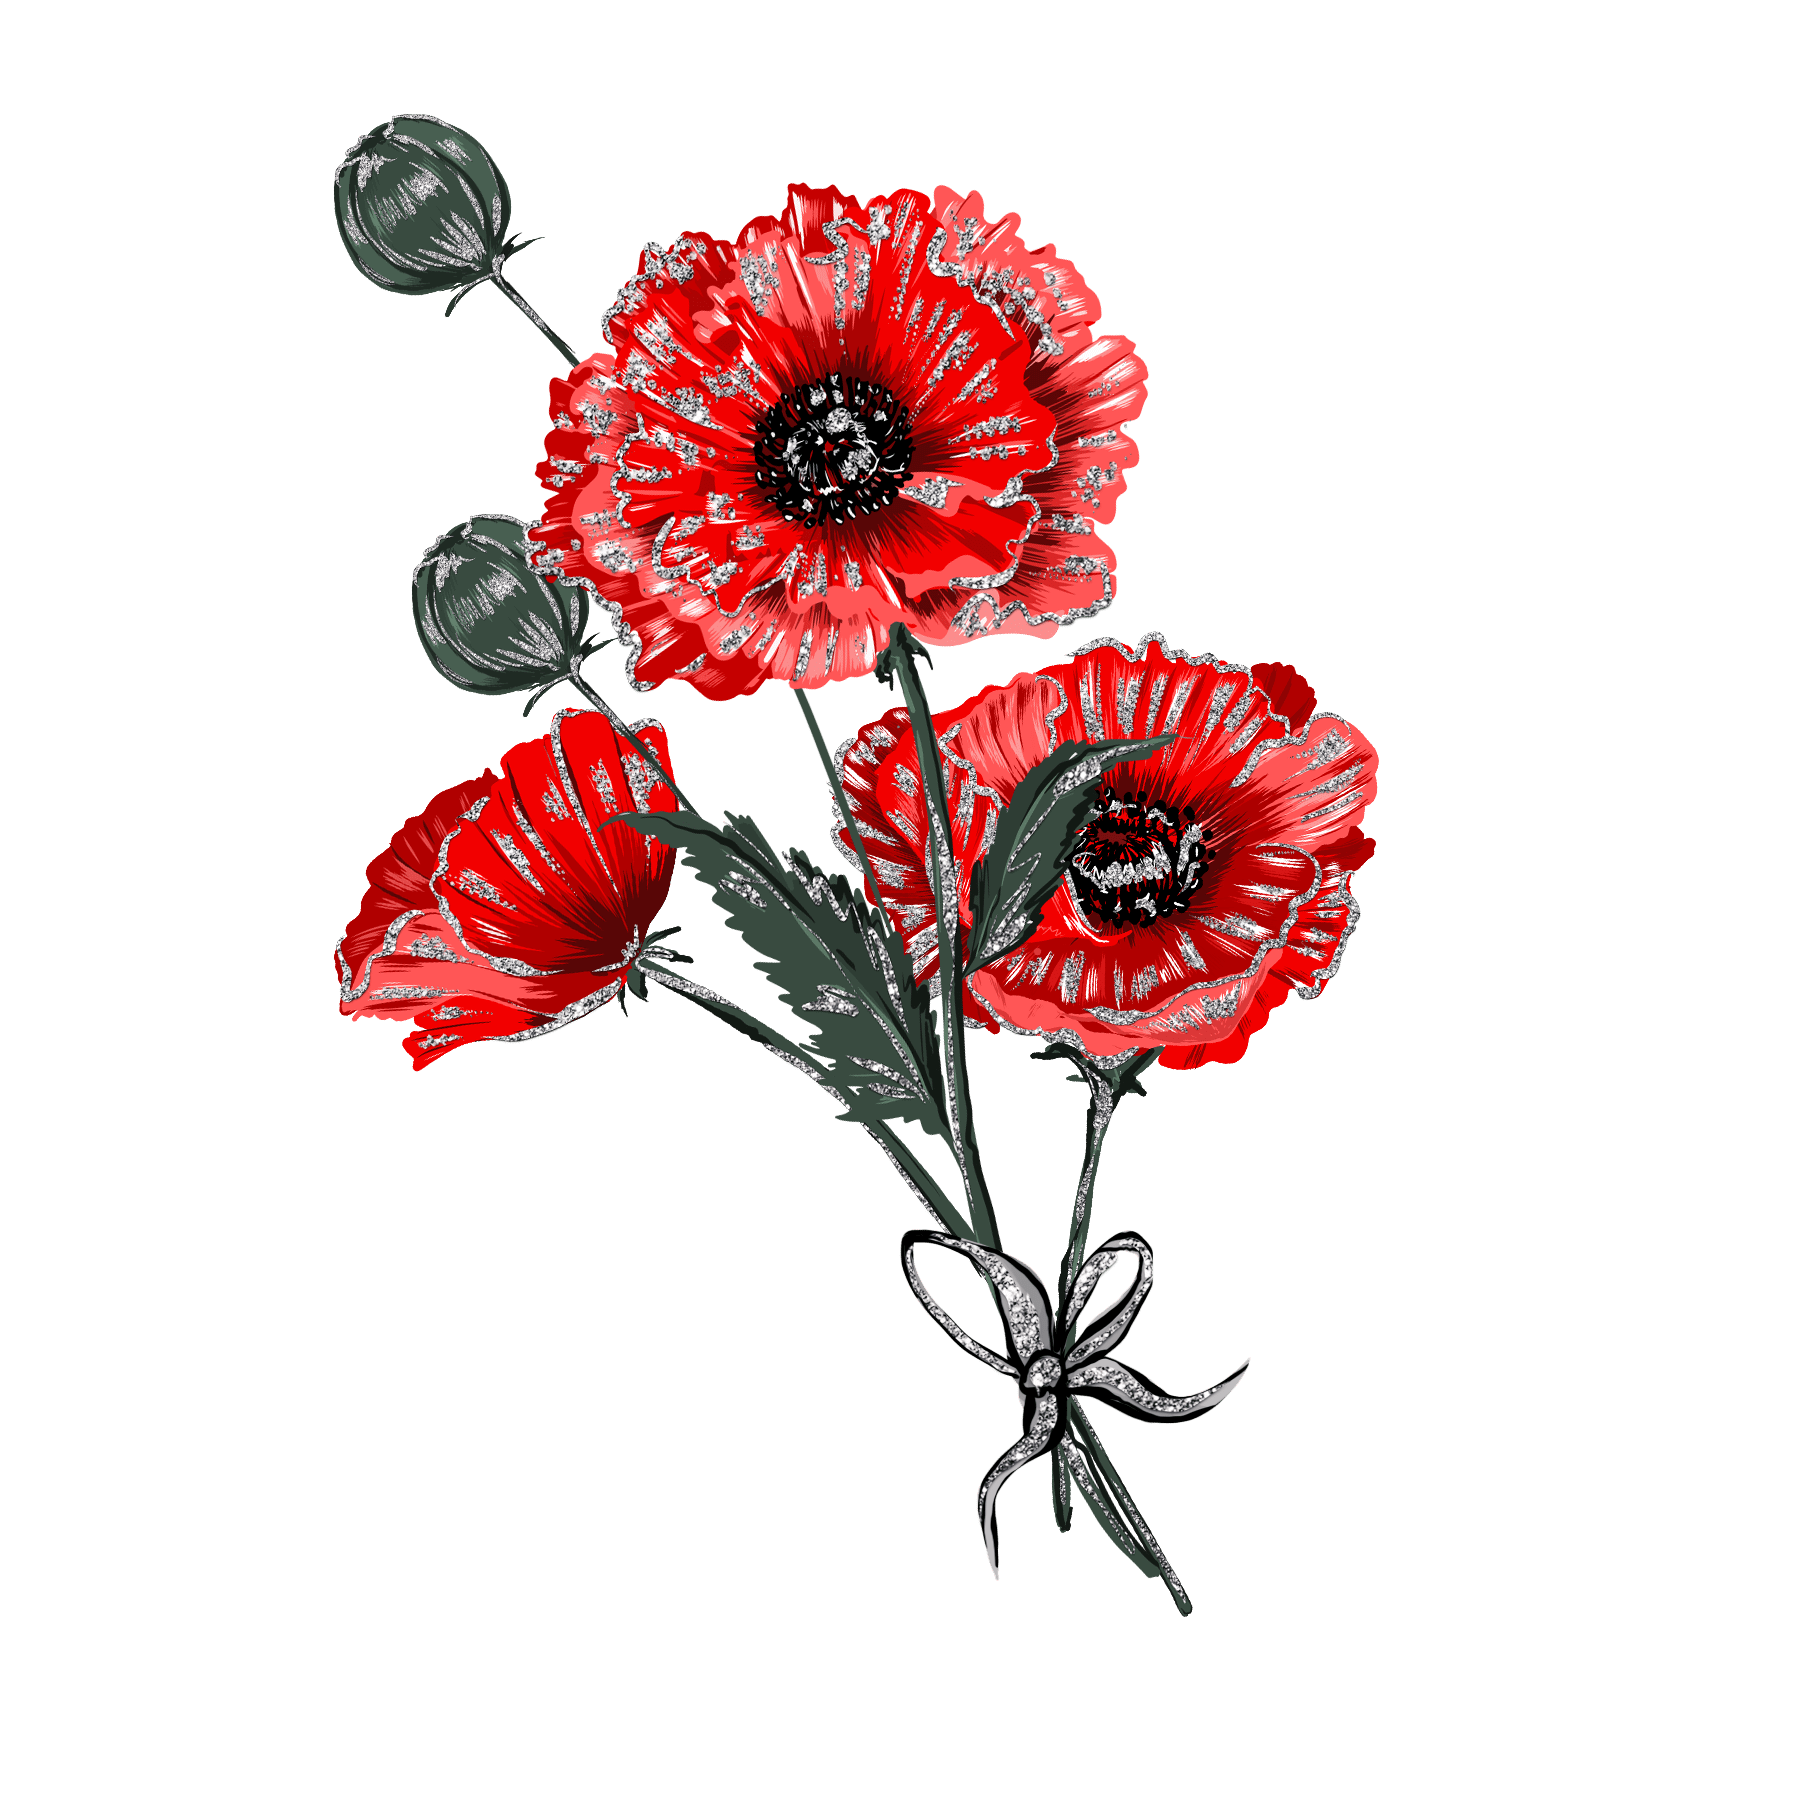 Poppy Poppies Remembrance Sticker By Stacey4790